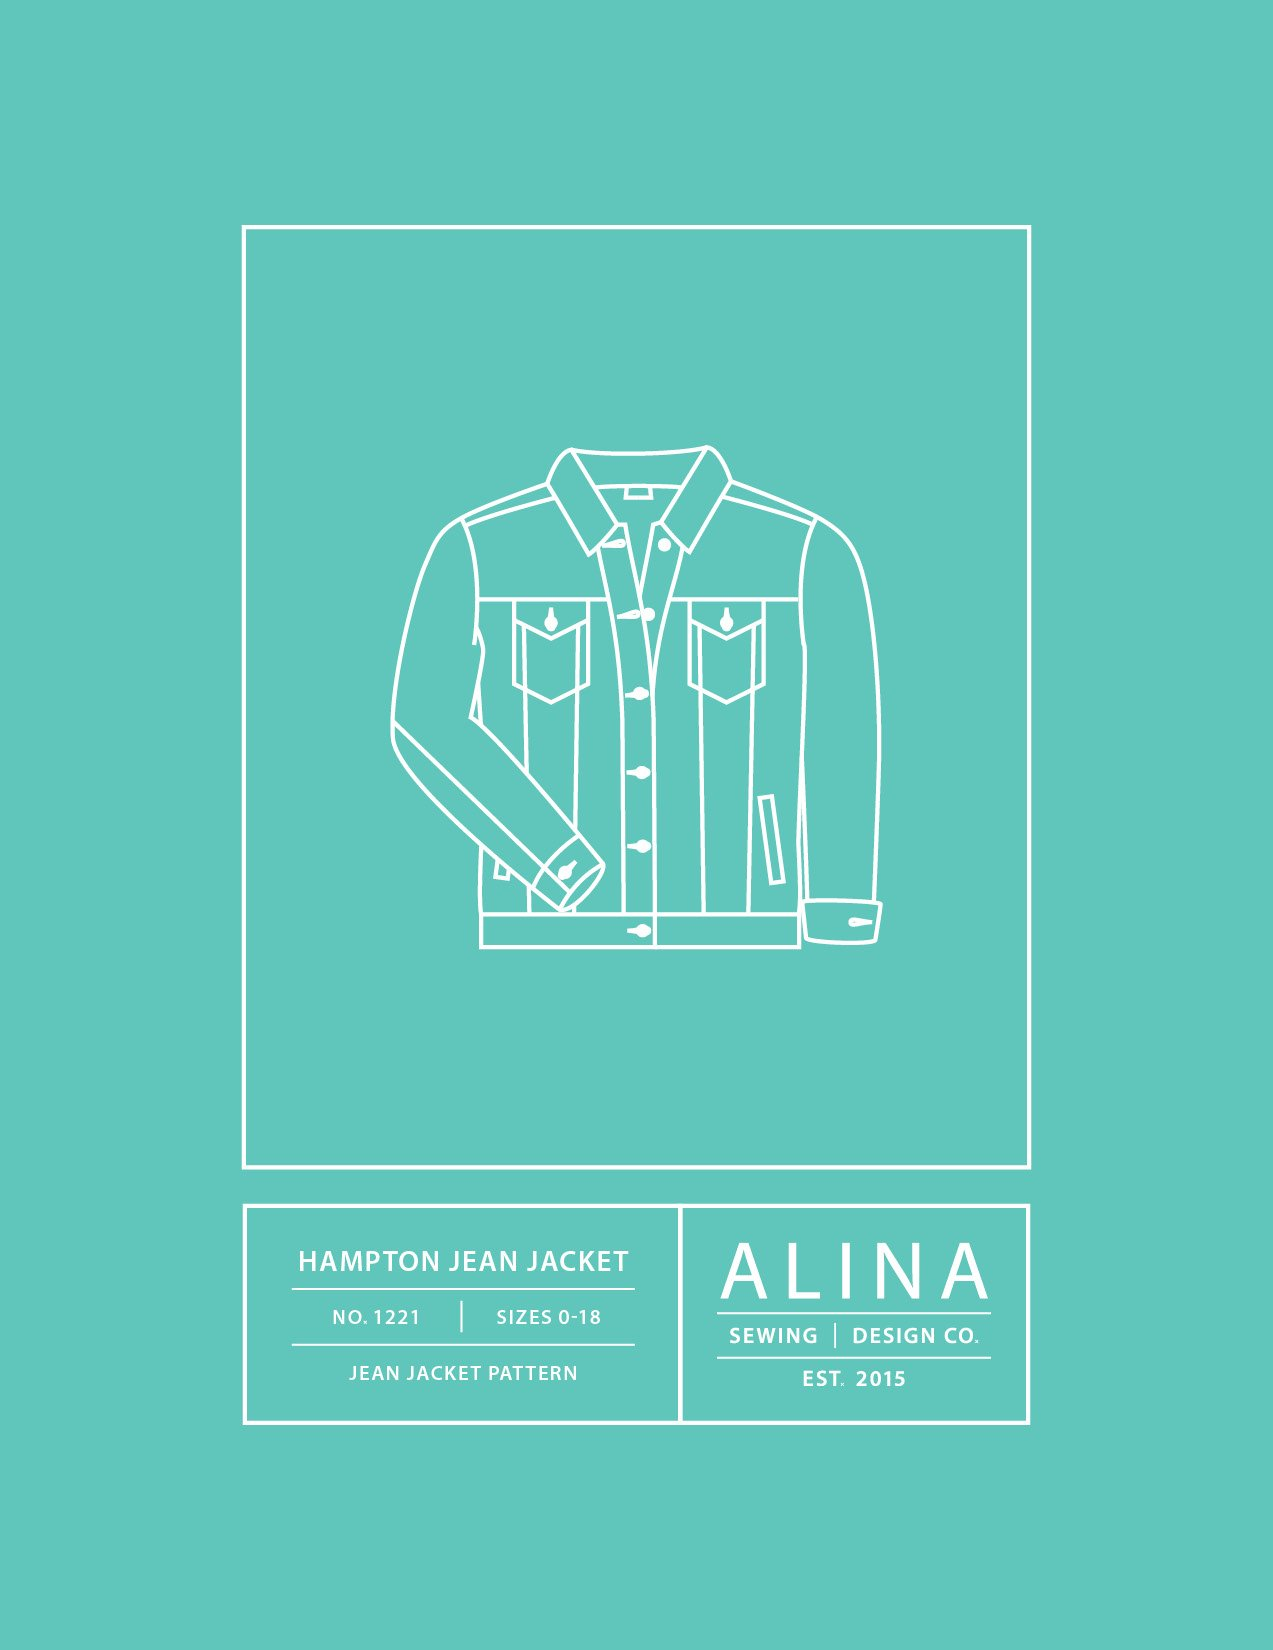 Hampton Jean Jacket Alina Sewing Design Co